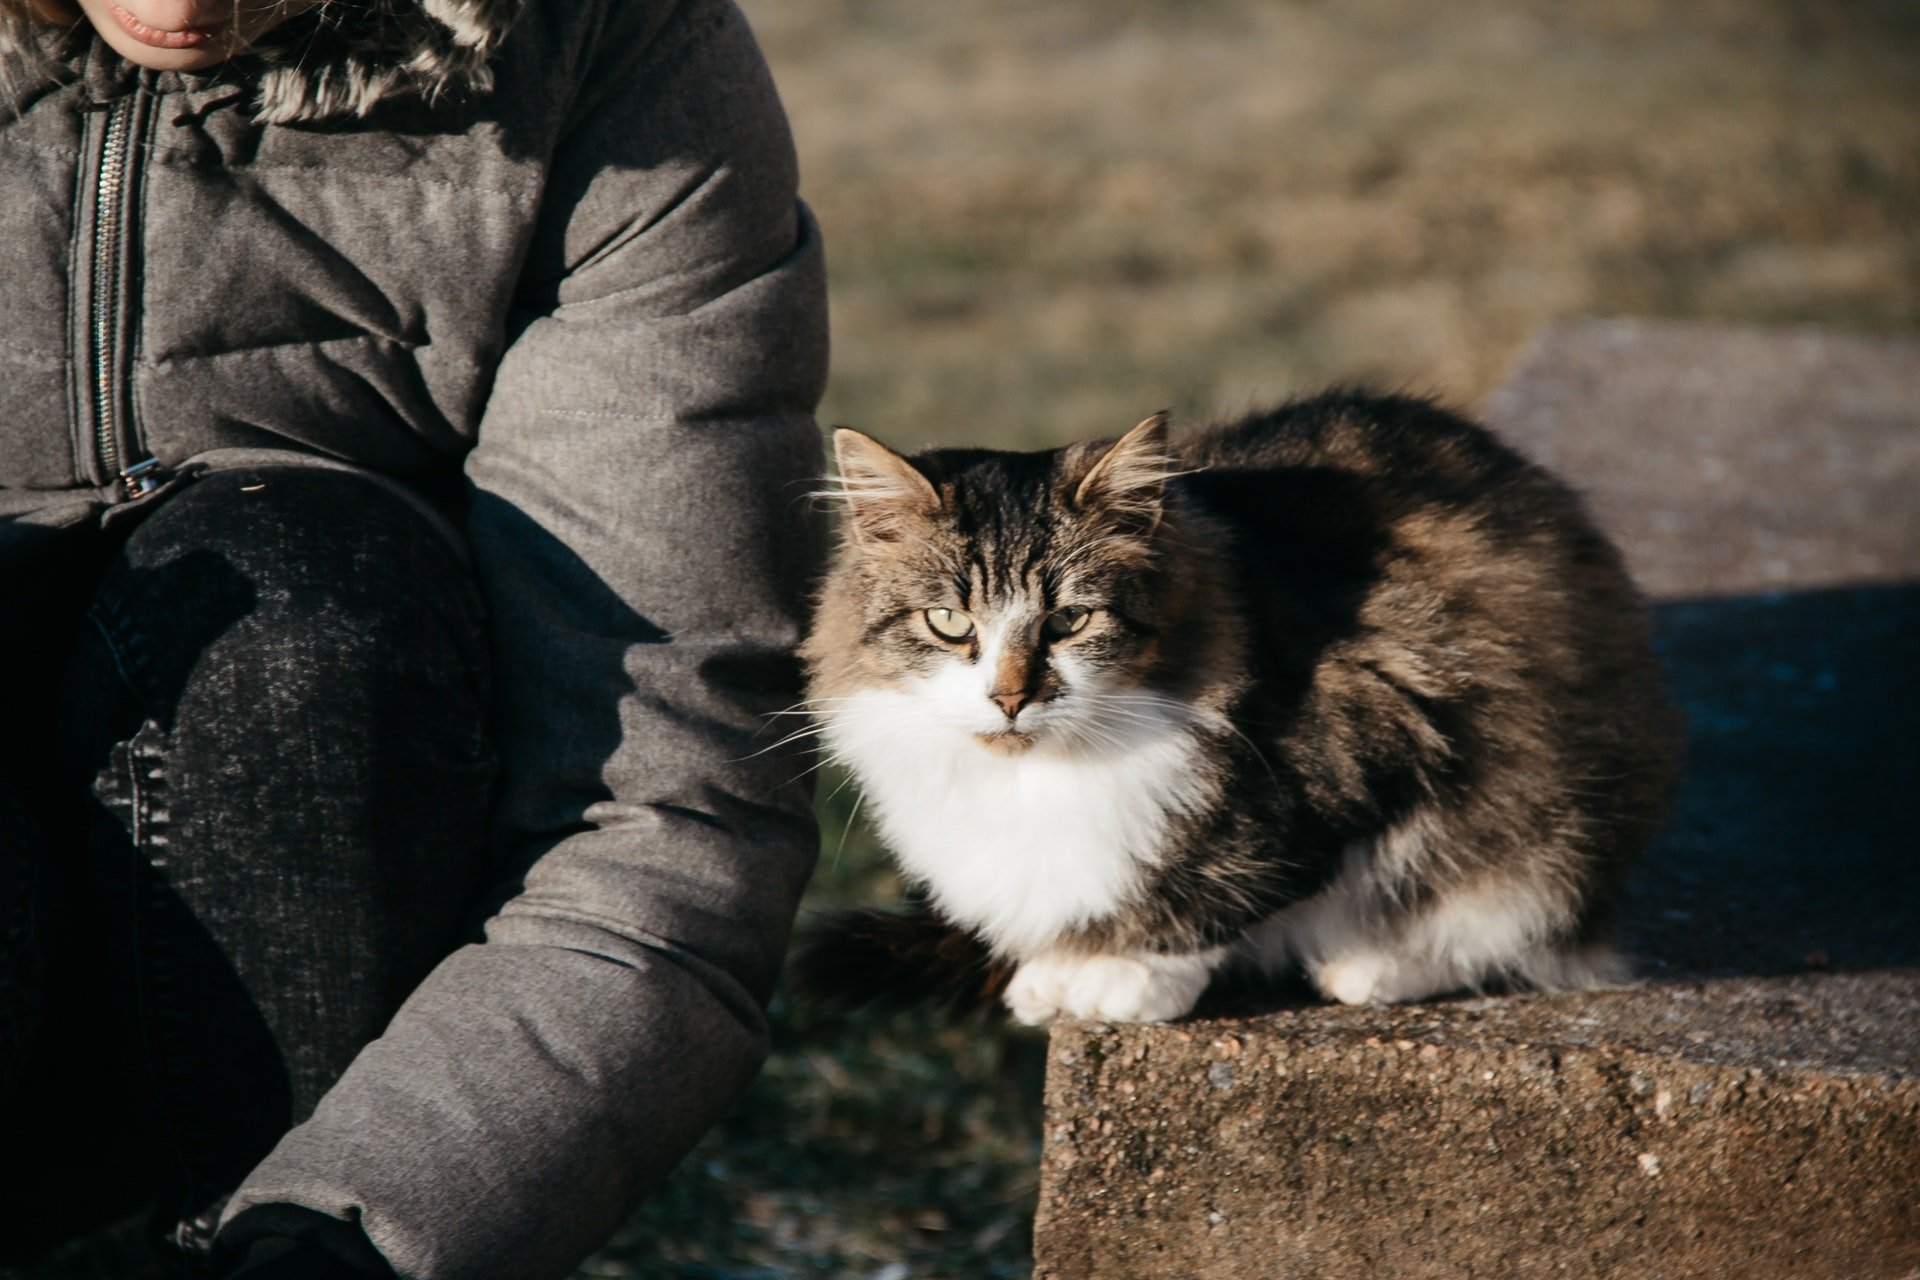 Person sitting outside with cat by their side | Photo: Pexels/NastyaSensei